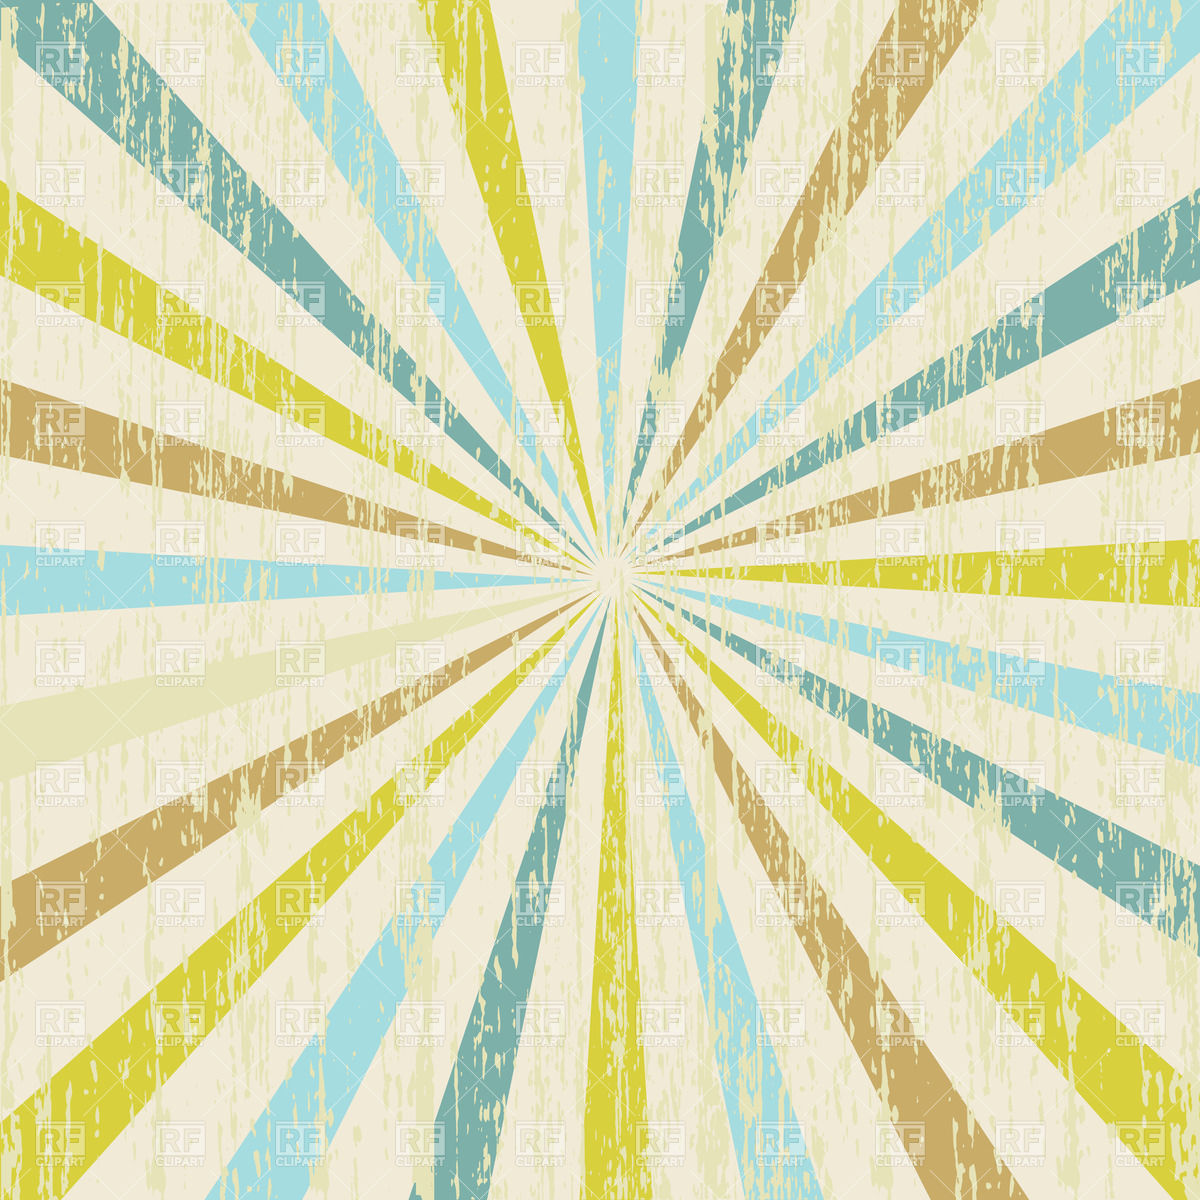 Abstract background made of grunge radial stripes Vector Image.